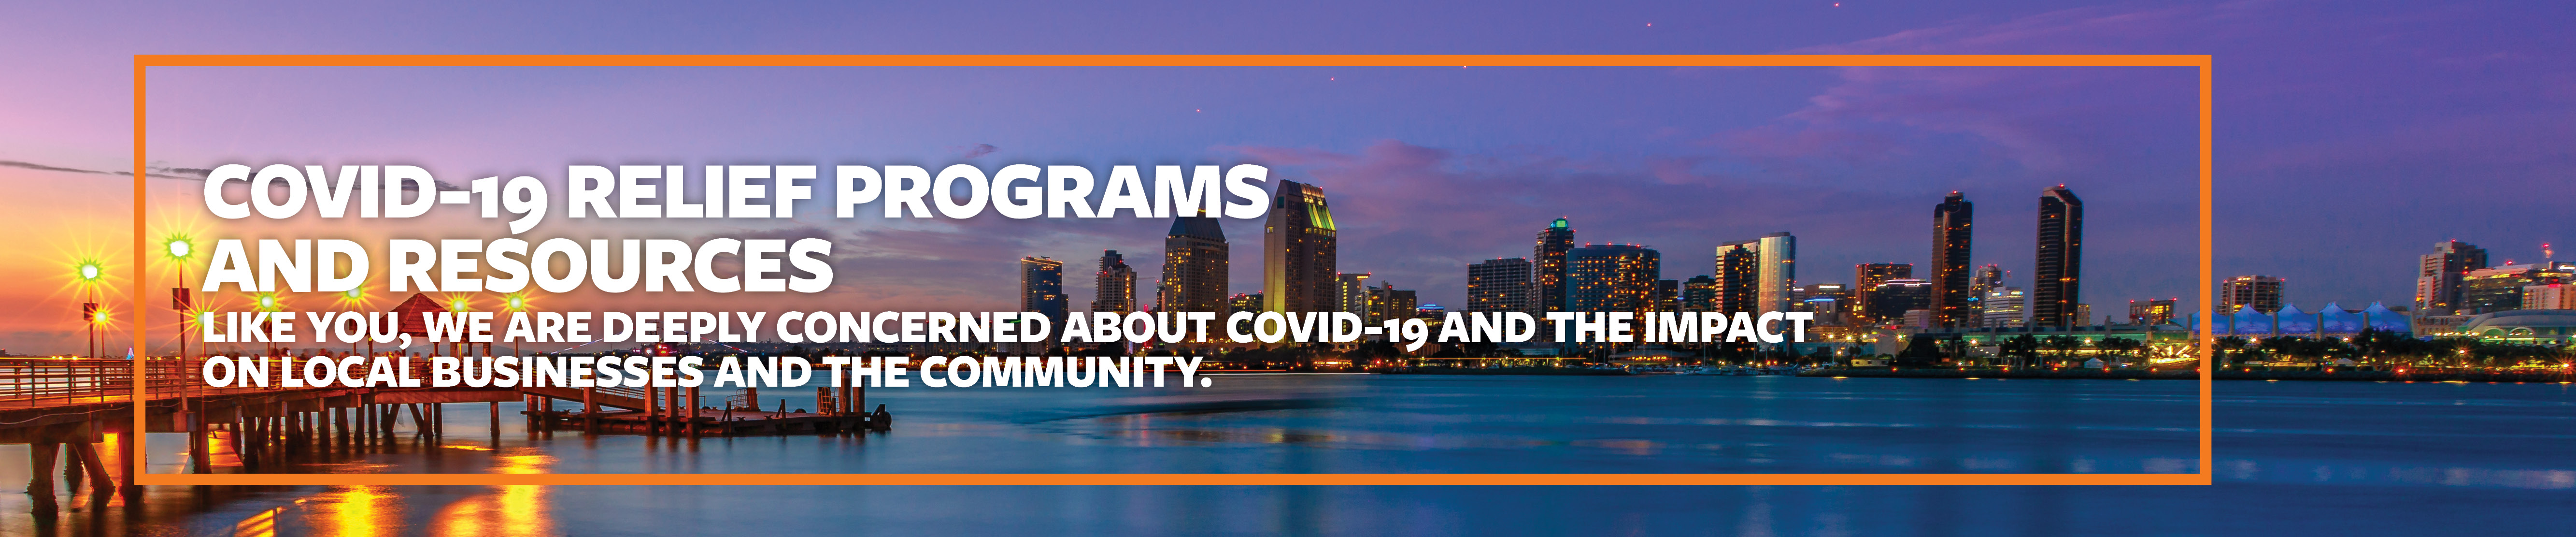 COVID-19 Relief Programs and Resources